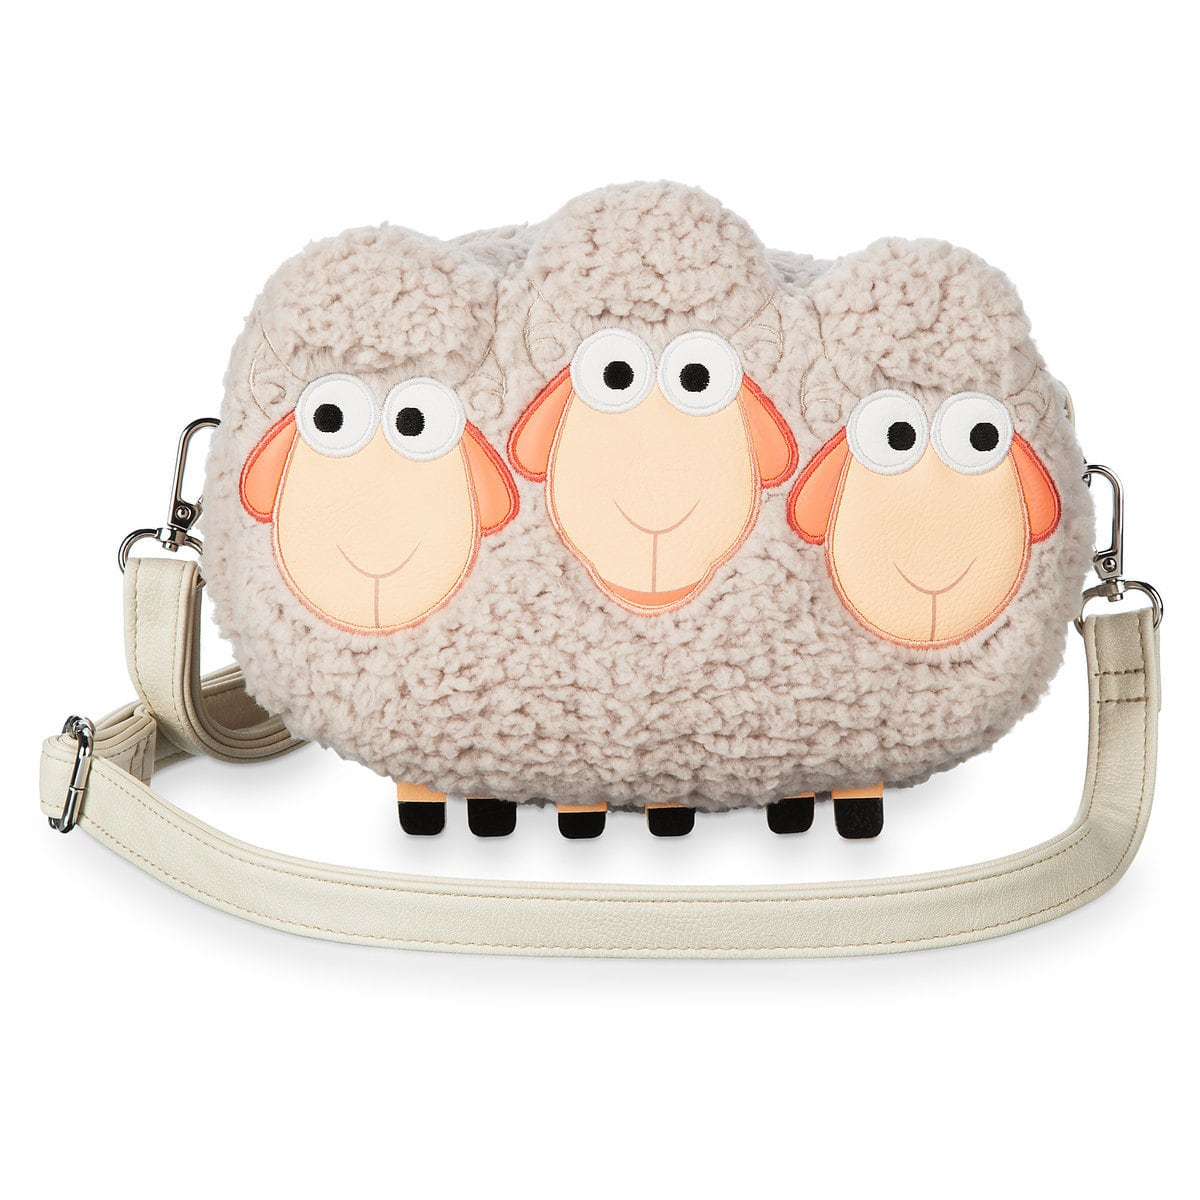 Billy, Goat, and Gruff Crossbody Bag